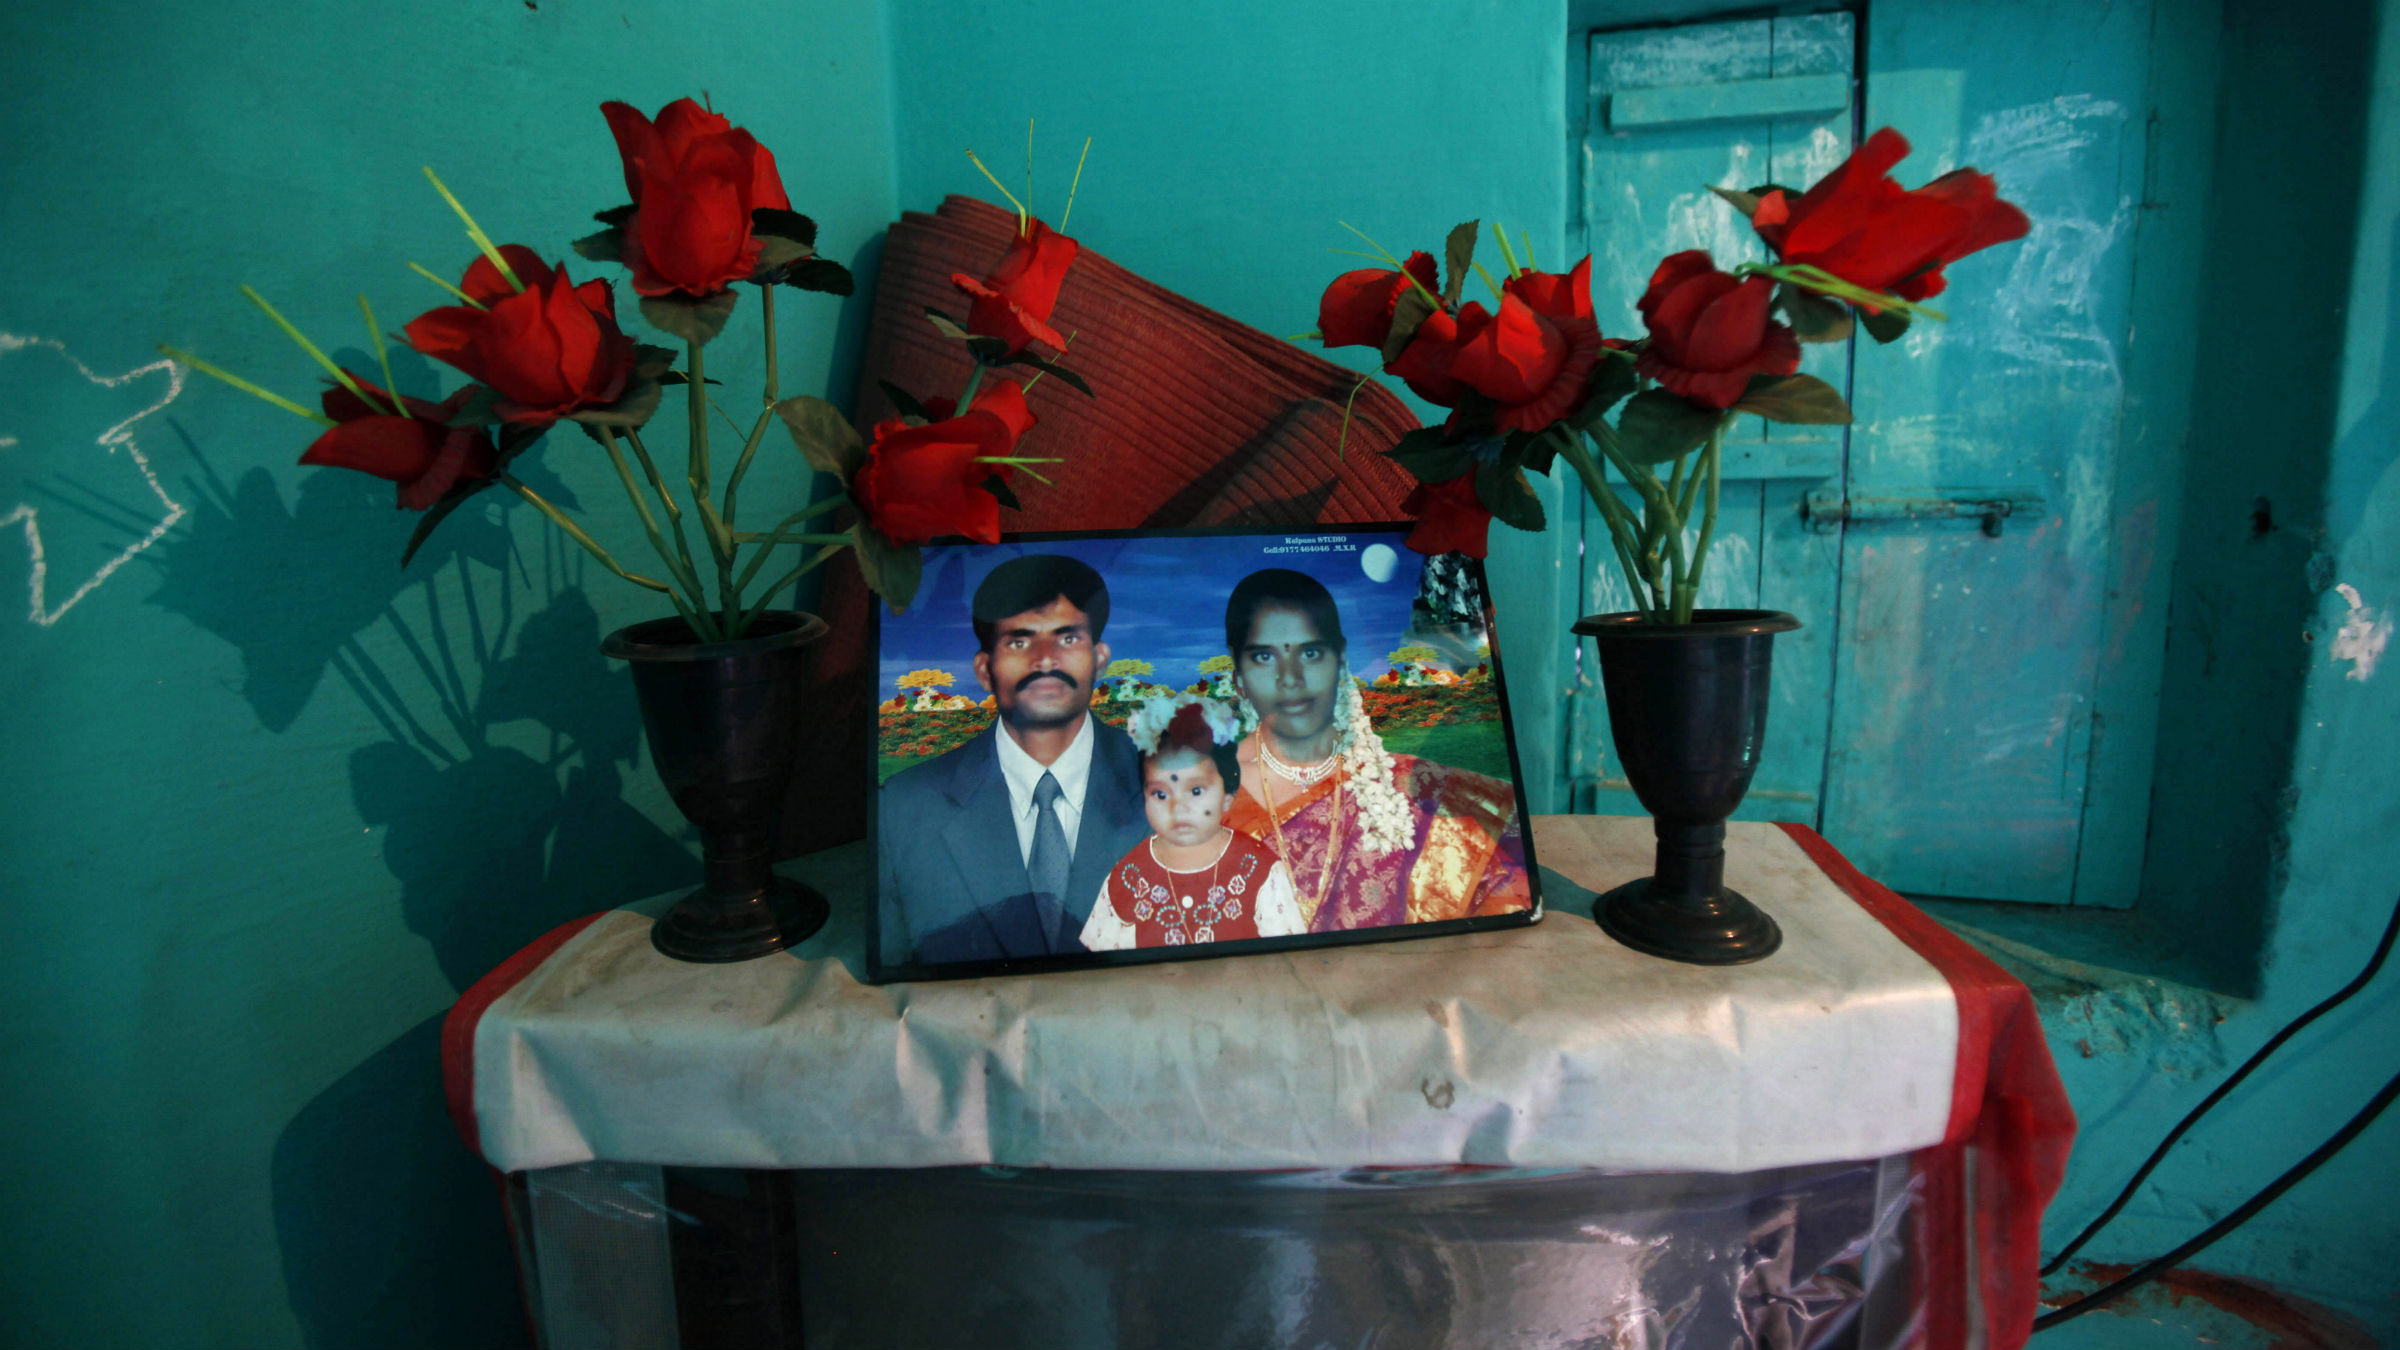 In this photo taken Feb. 14, 2012, a portrait of debt-ridden Jayaramappa, who hanged himself in his home on Oct. 4, 2010, and his family stands on top of a television set inside their house in Madakasira village about 145 kilometers (90 miles) north of Bangalore, India. A wave of suicides among the impoverished residents of India's Andhra Pradesh state was blamed on the relentless tactics of agents from microfinance companies, which give small loans intended to lift up the very poor.